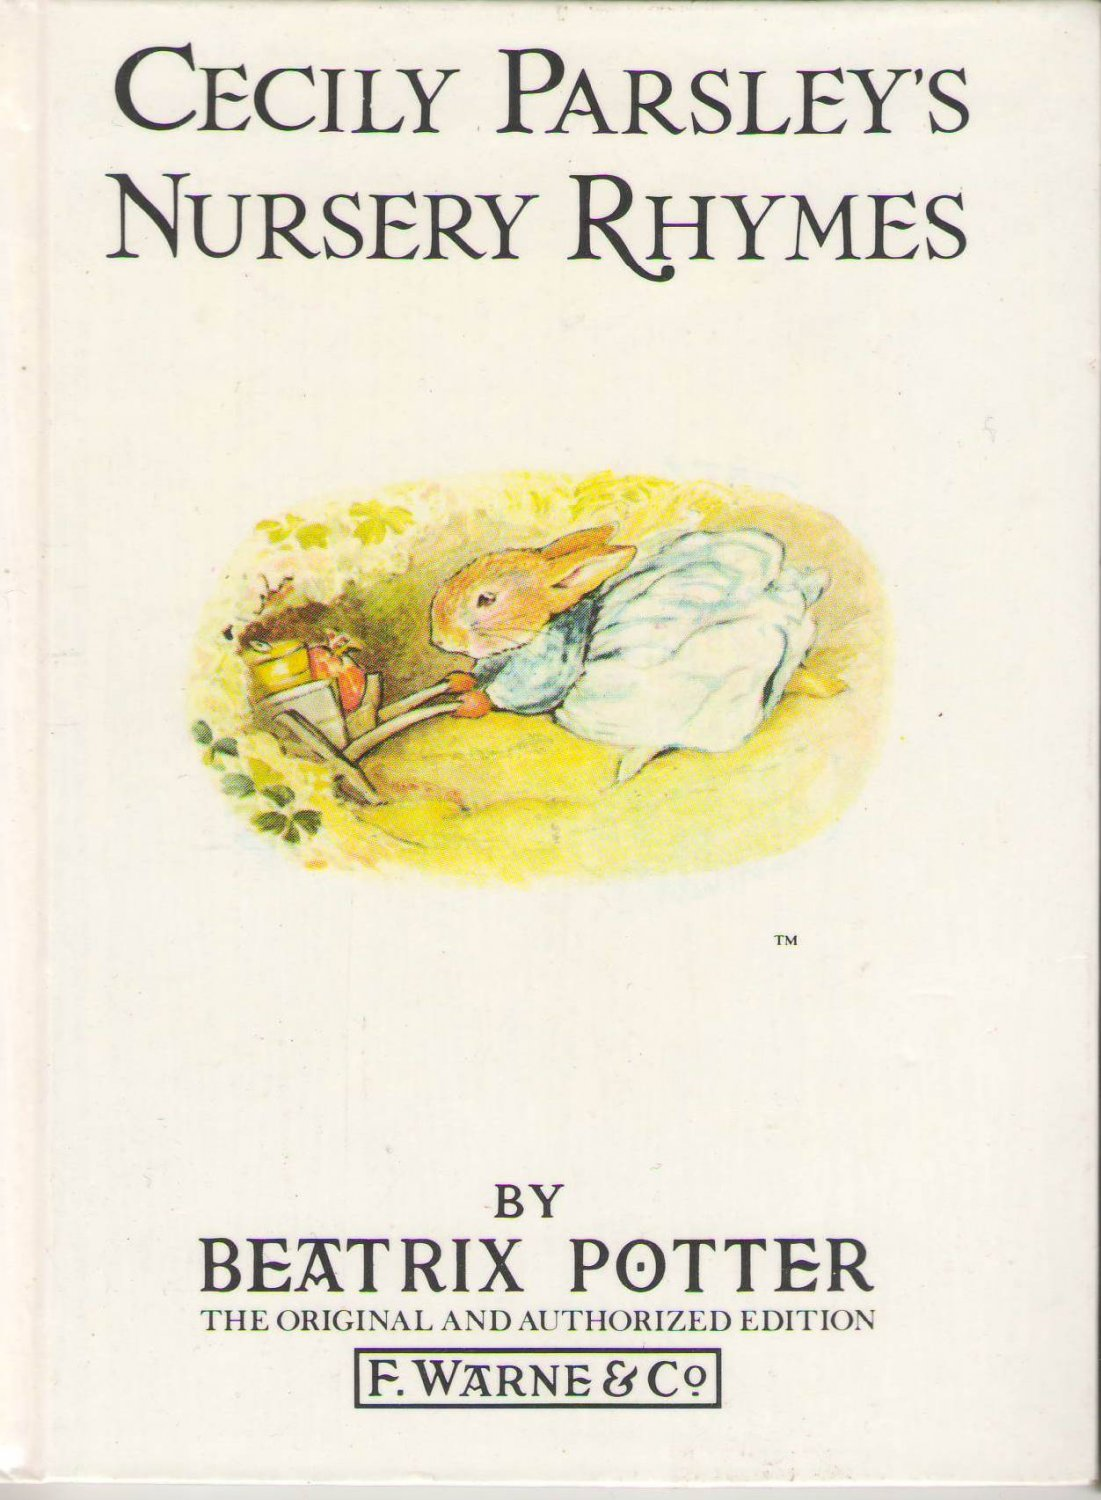 Cecily Parsley's Nursery Rhymes by Beatrix Potter SMC